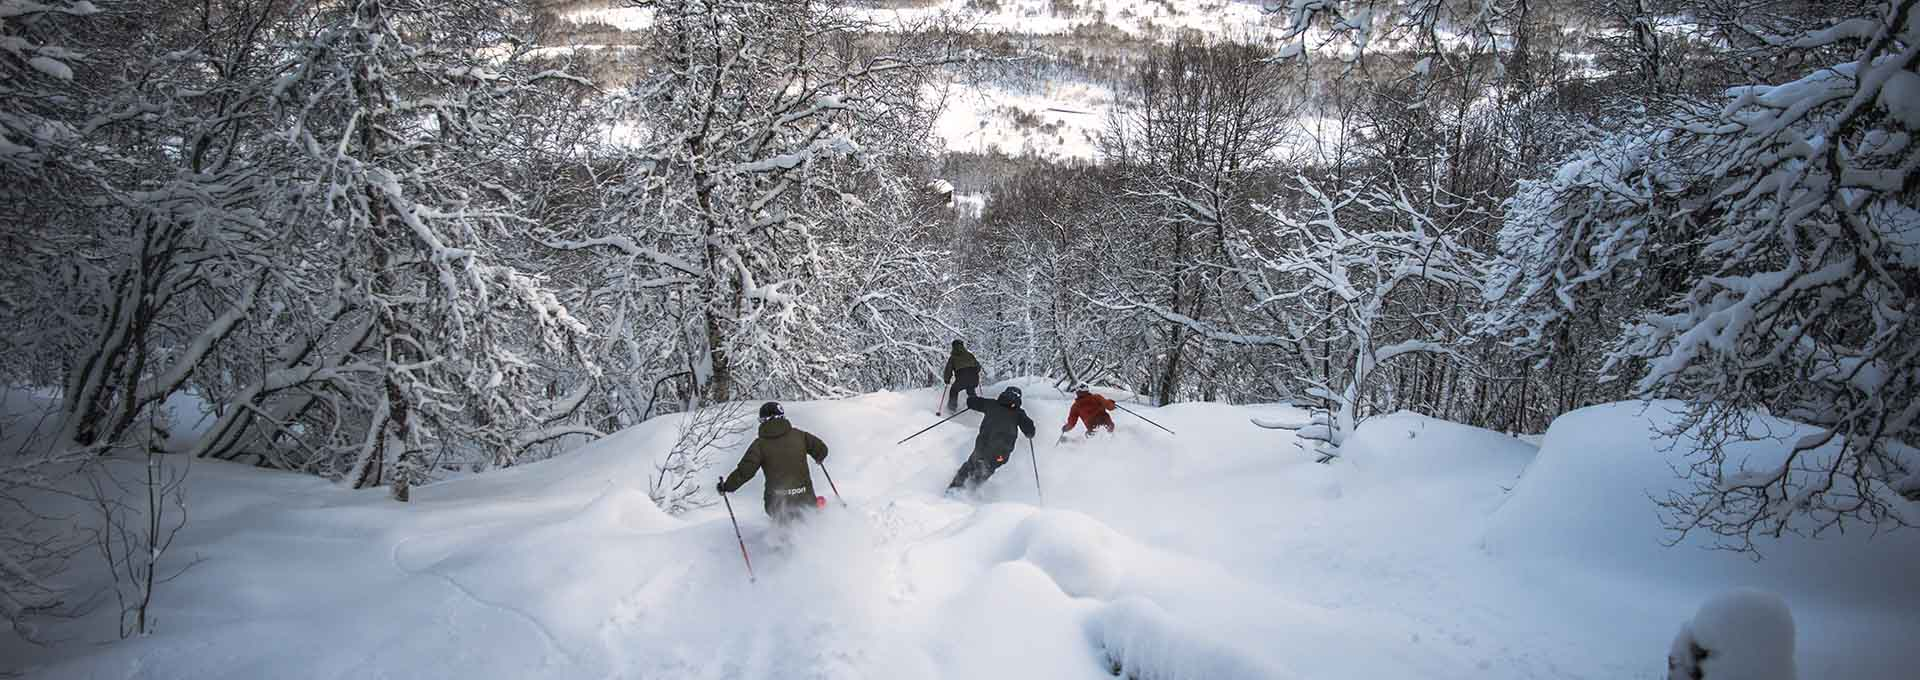 off-piste skiing in birch forest